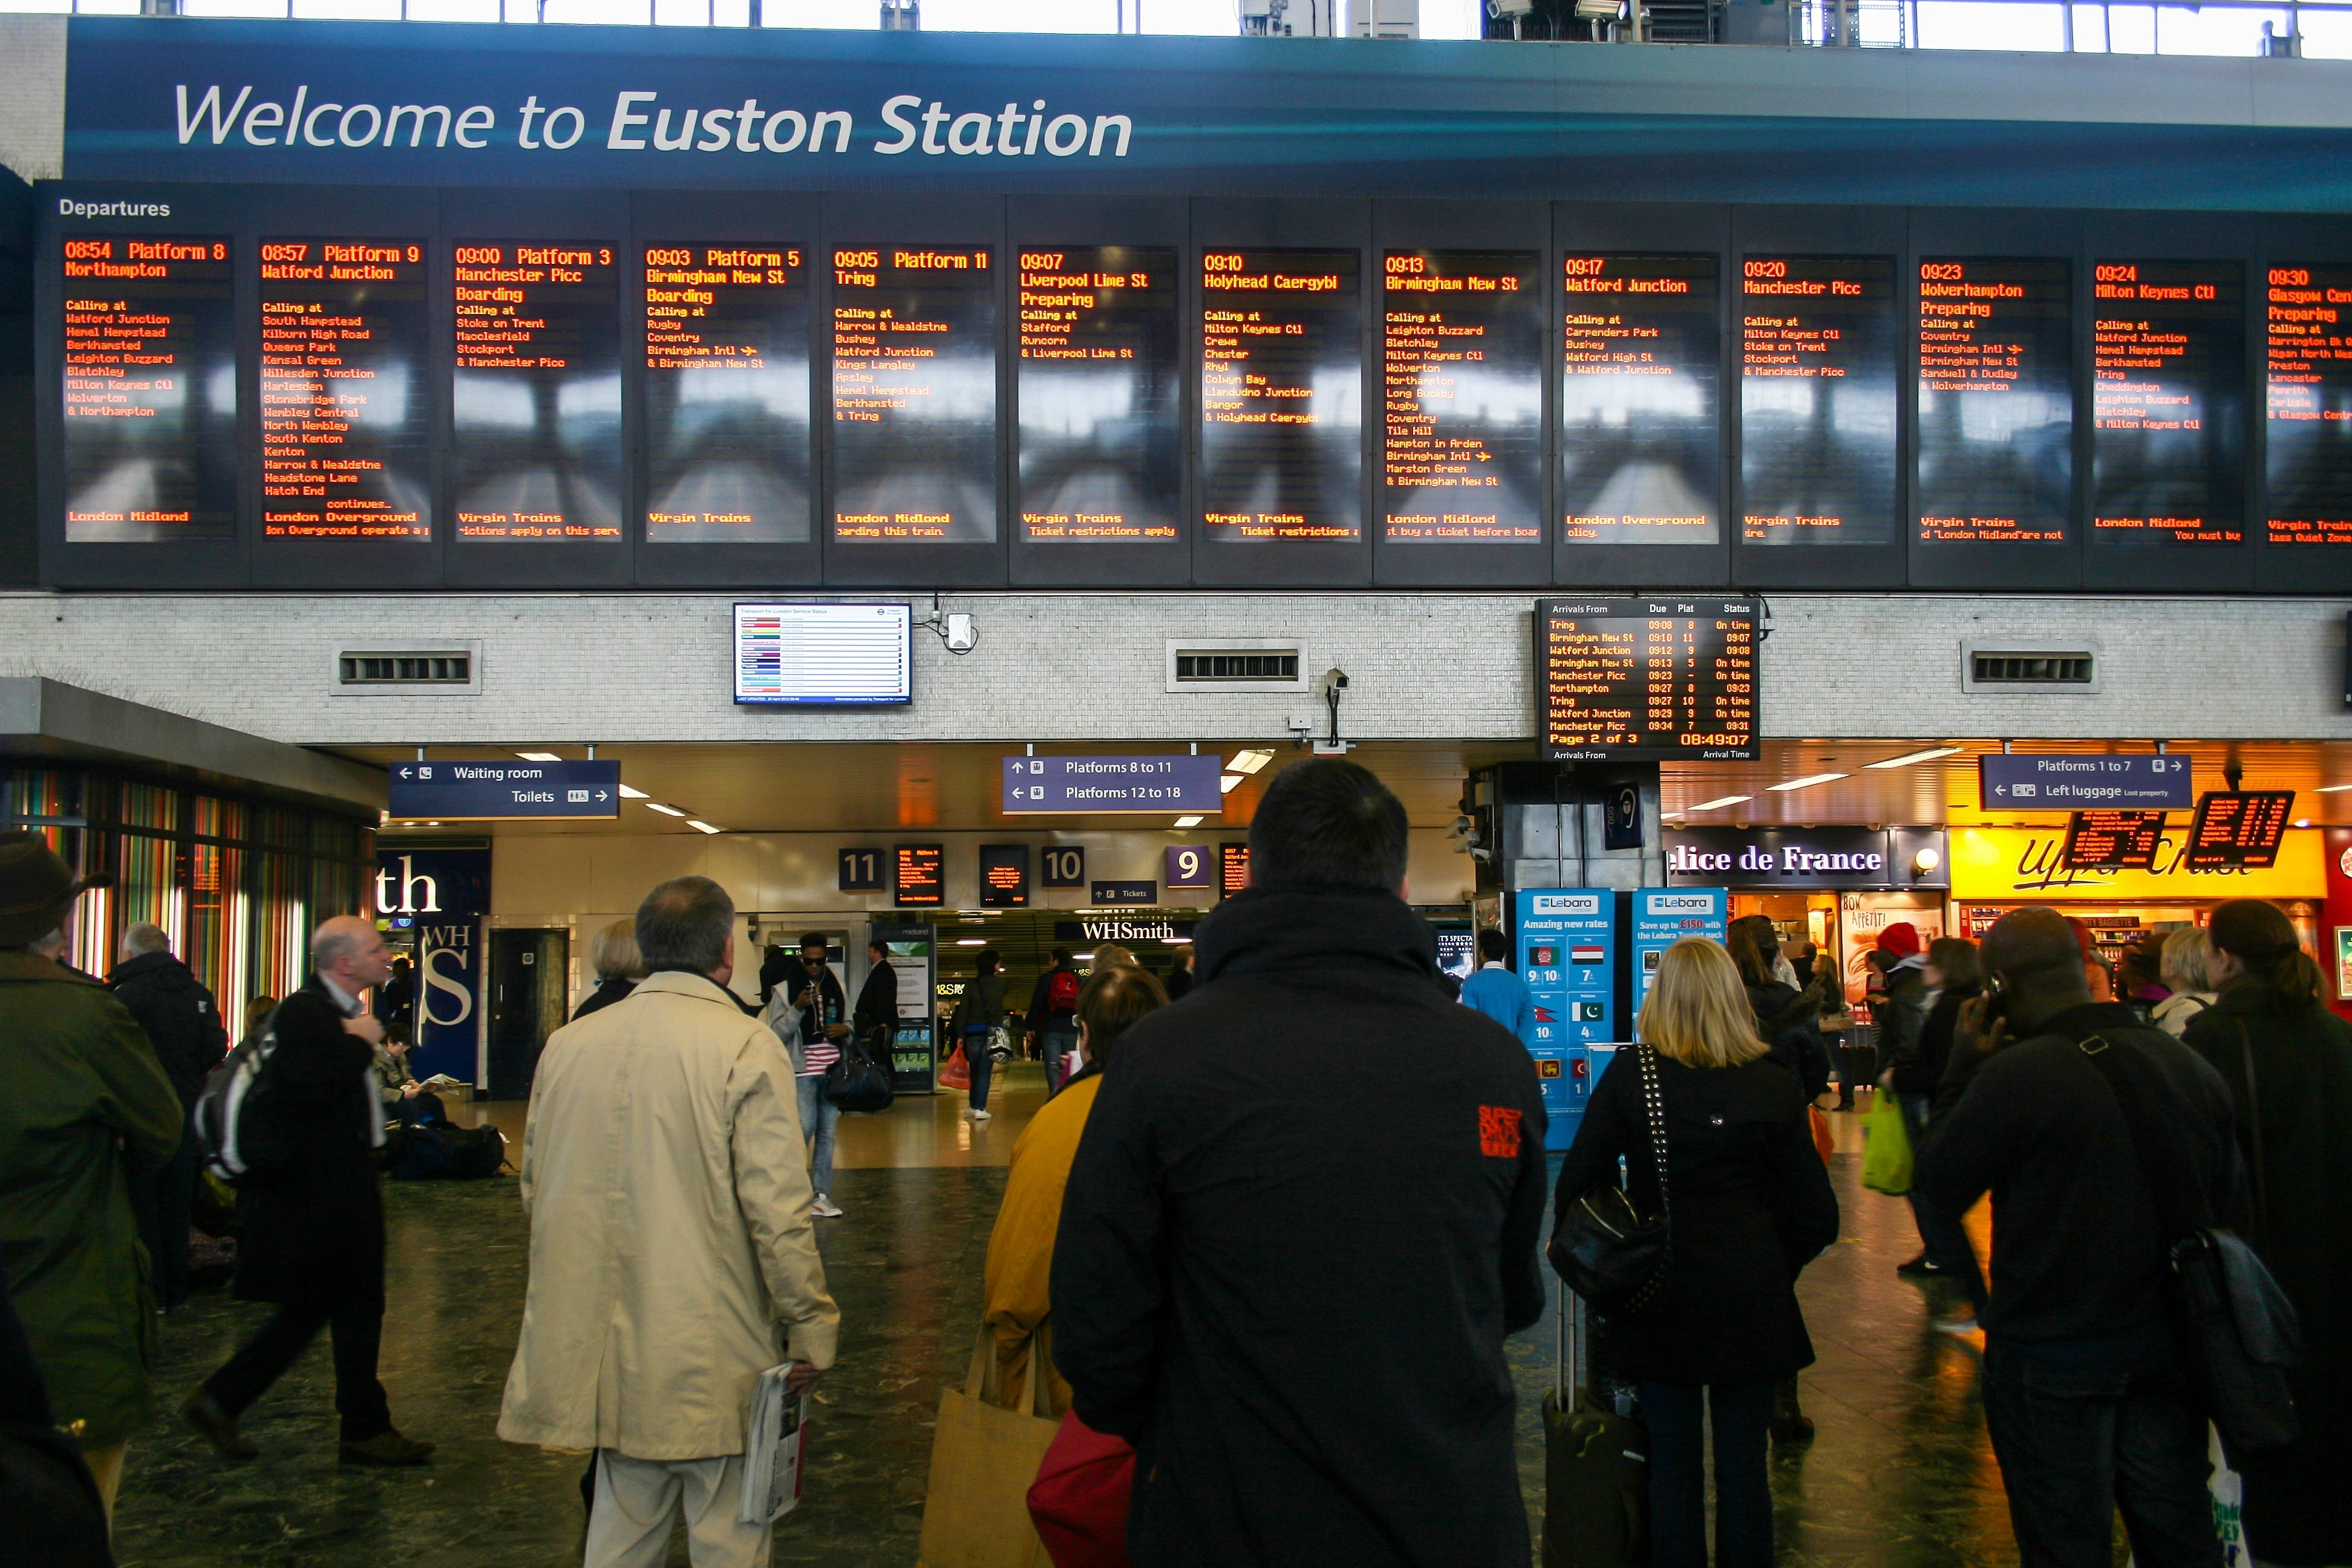 HS2 preparation work to take place at Euston station